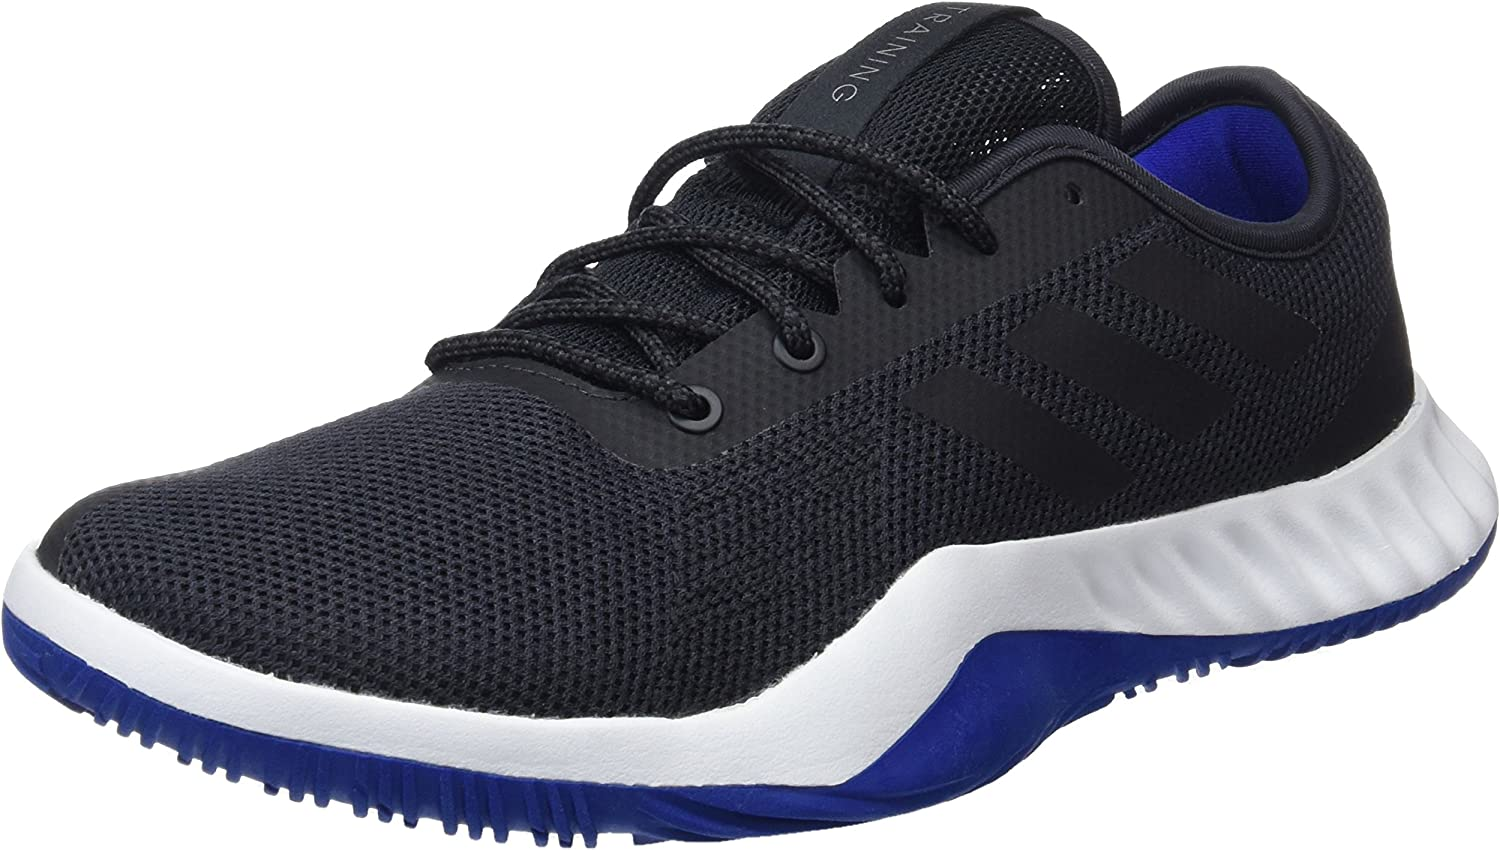 Adidas Men's Crazytrain LT M, Carbon CORE Black Collegiate Royal